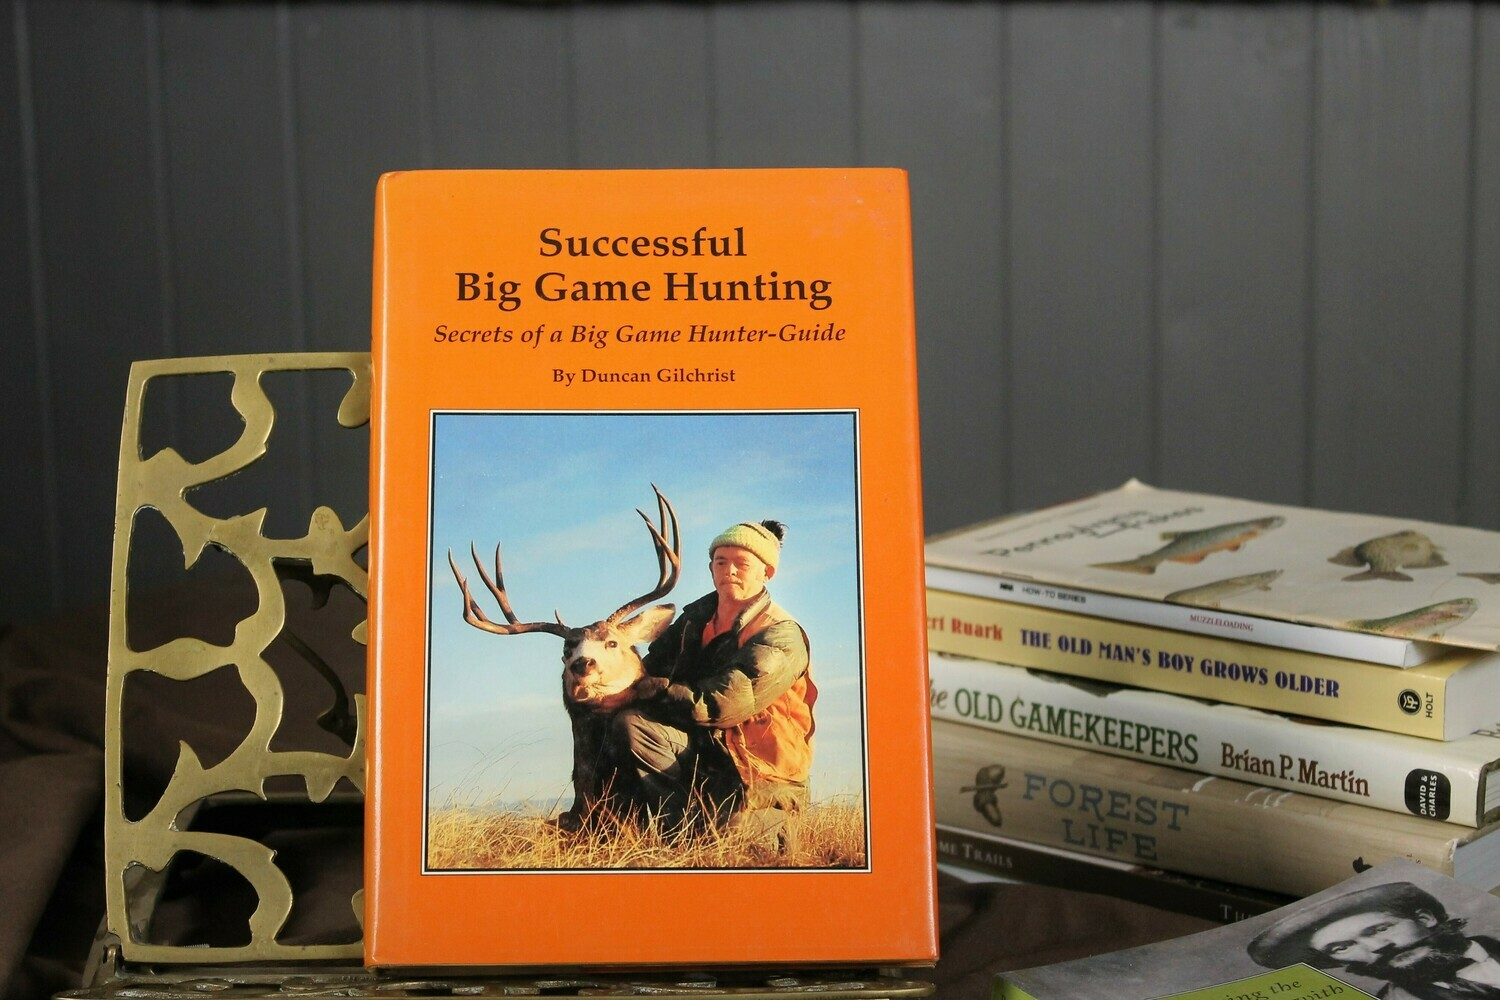 Successful Big Game Hunting by Duncan Gilchrist